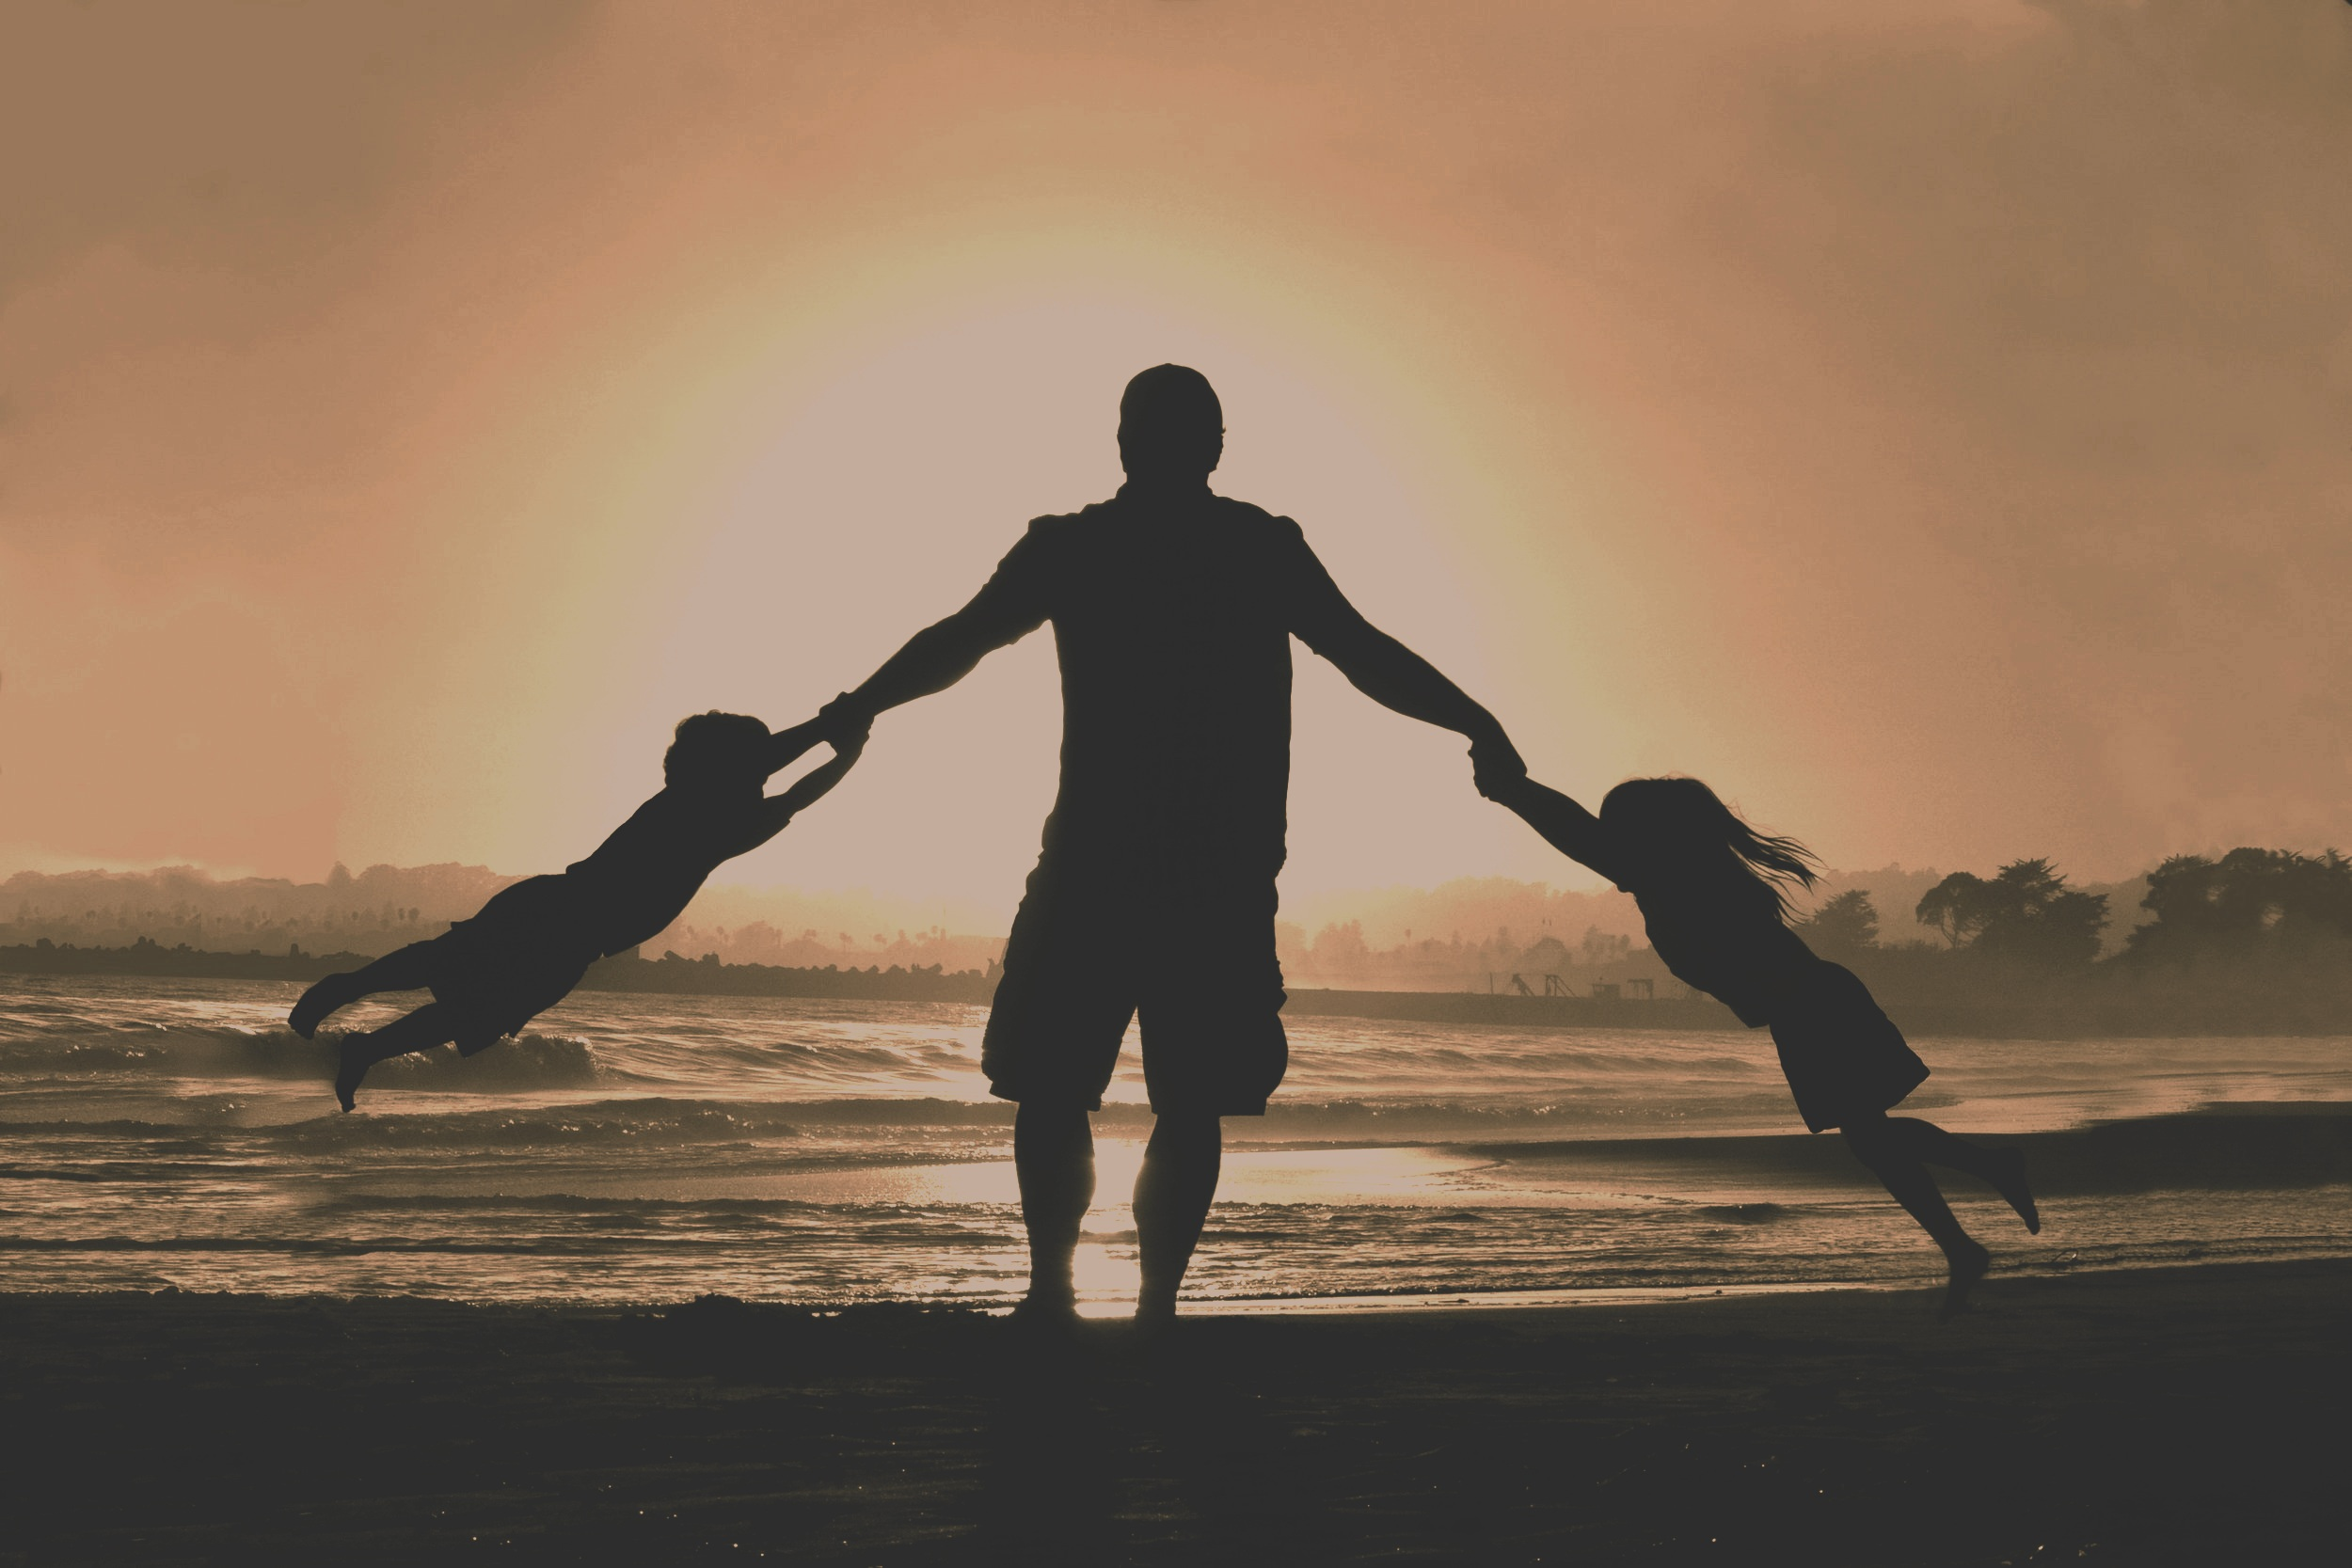 Mindful Father/Partner Workshops - dates: August 22nd, October 17th, and December 19th 2019time: 6pm-8pmlocation: Dar a Luz Birth CenterFathers getting together to work on the skill of being present for themselves and those around them. An opportunity for men to get together and support each other. Donation sliding scale: $10-$20 per workshop session